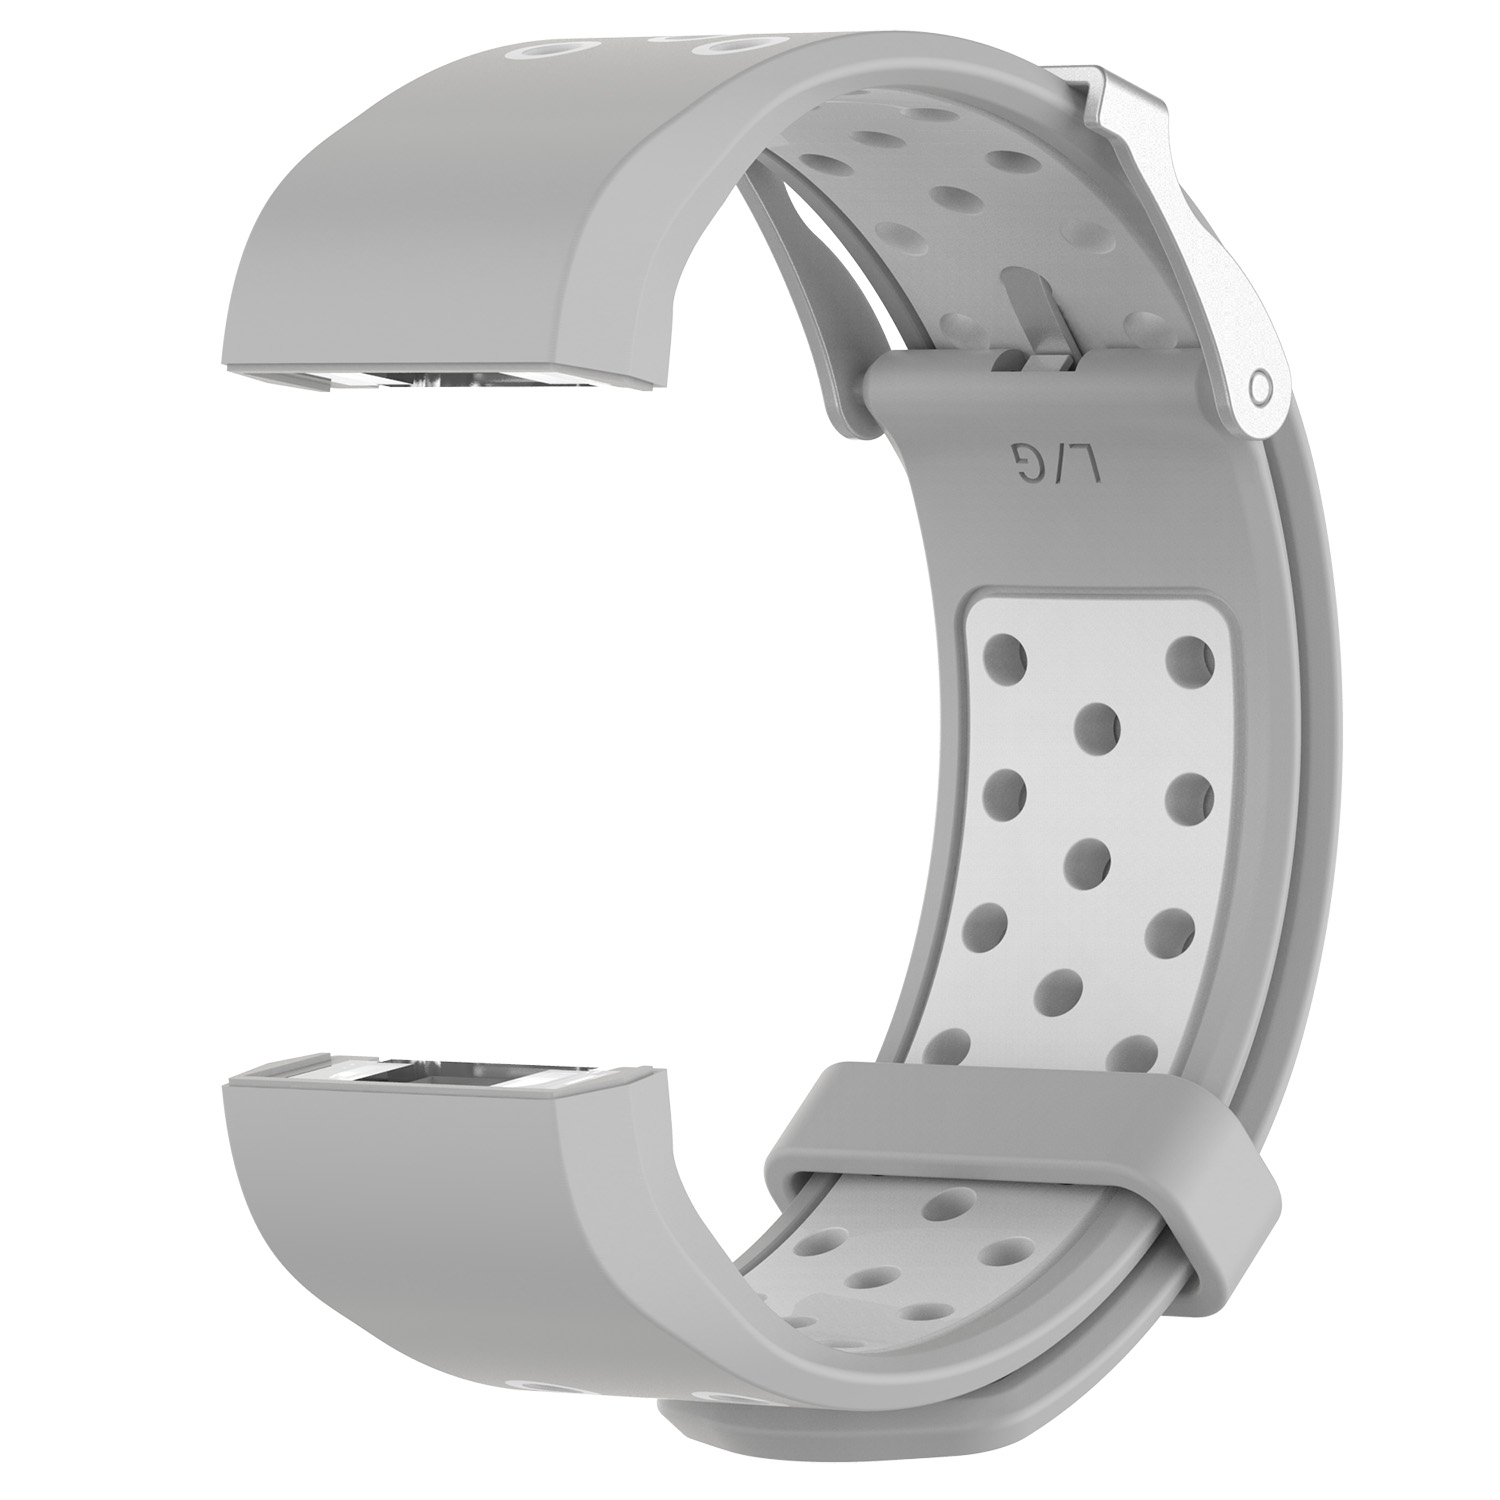 Replacement-Silicone-Wristband-Watch-Strap-Bands-Bracelet-For-Fitbit-Charge-2 thumbnail 89